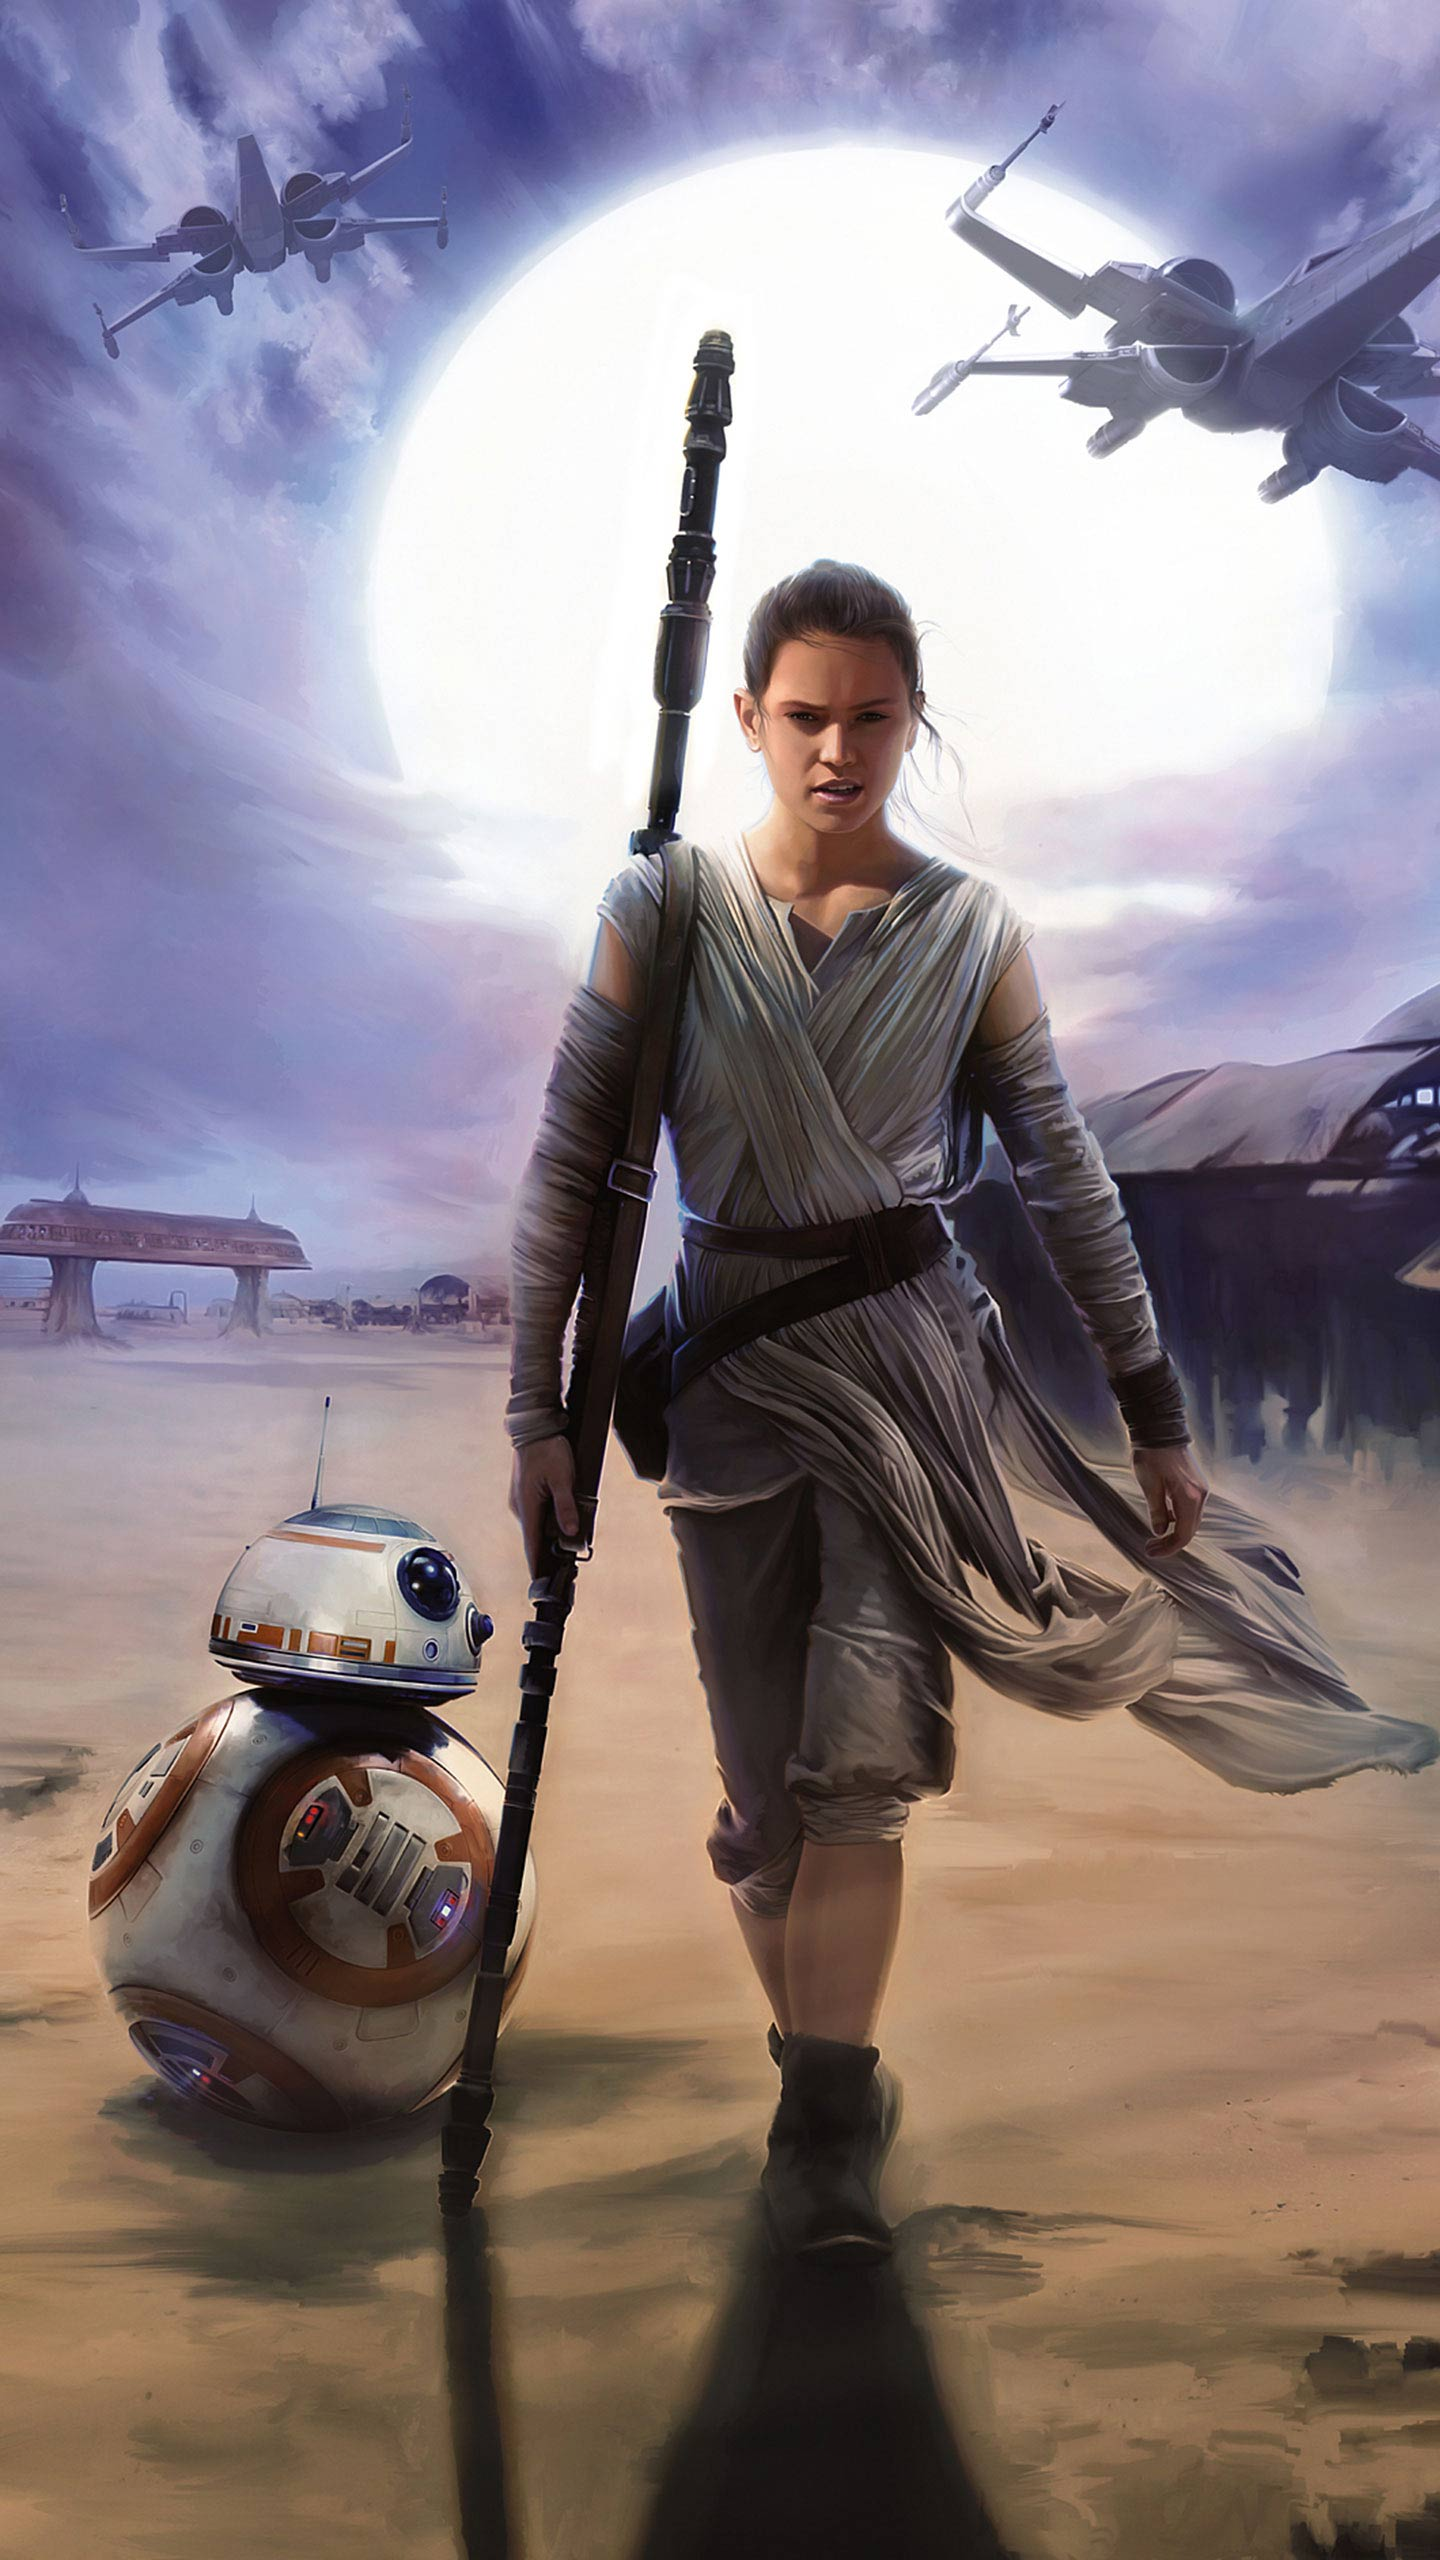 Star Wars Rey Star Wars Wallpaper Iphone 2926689 Hd Wallpaper Backgrounds Download